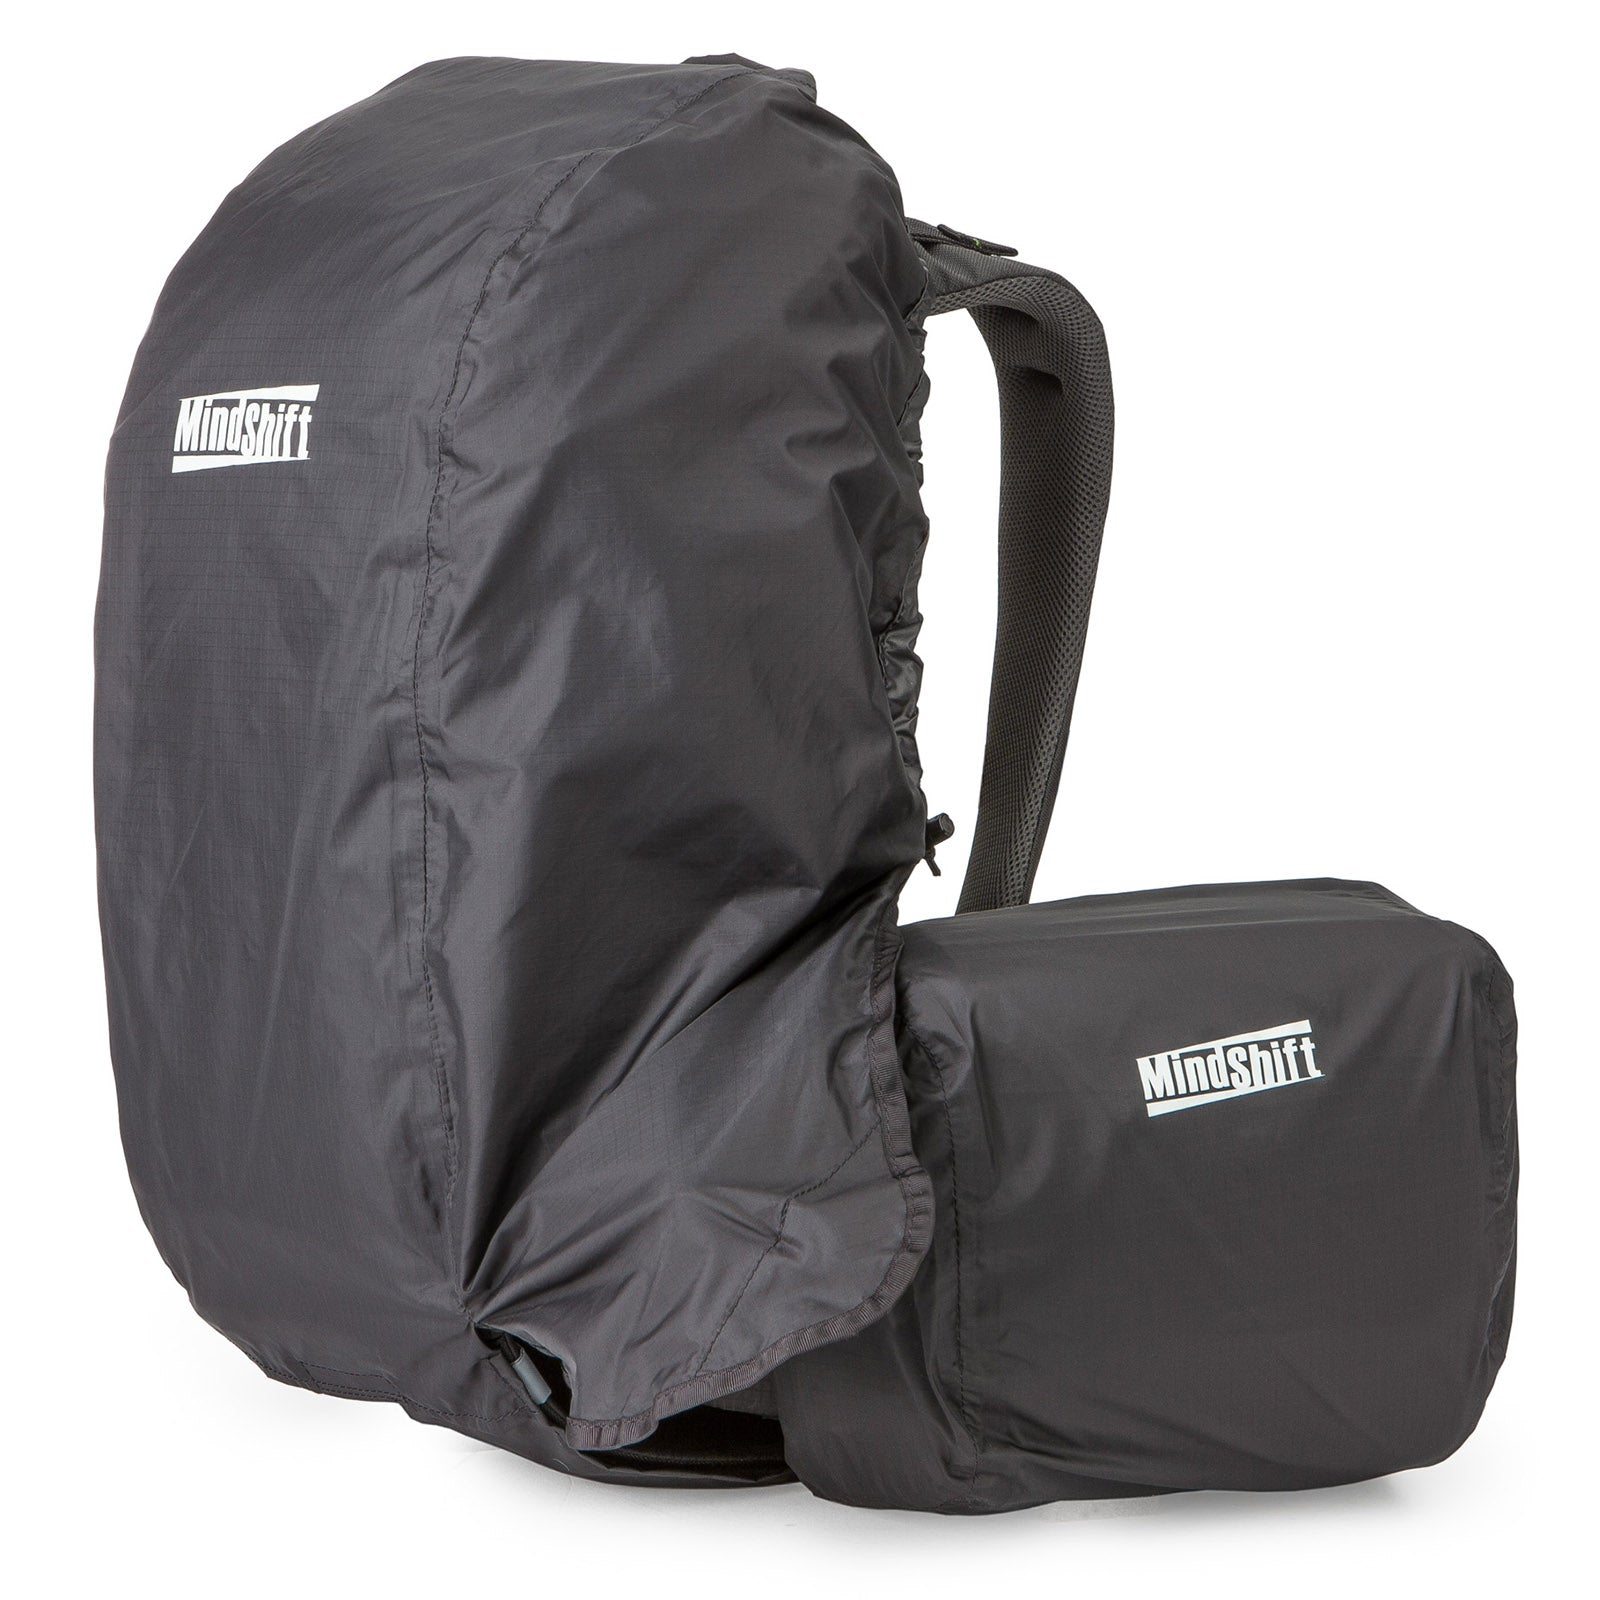 Includes separate rain covers for the backpack and beltpack